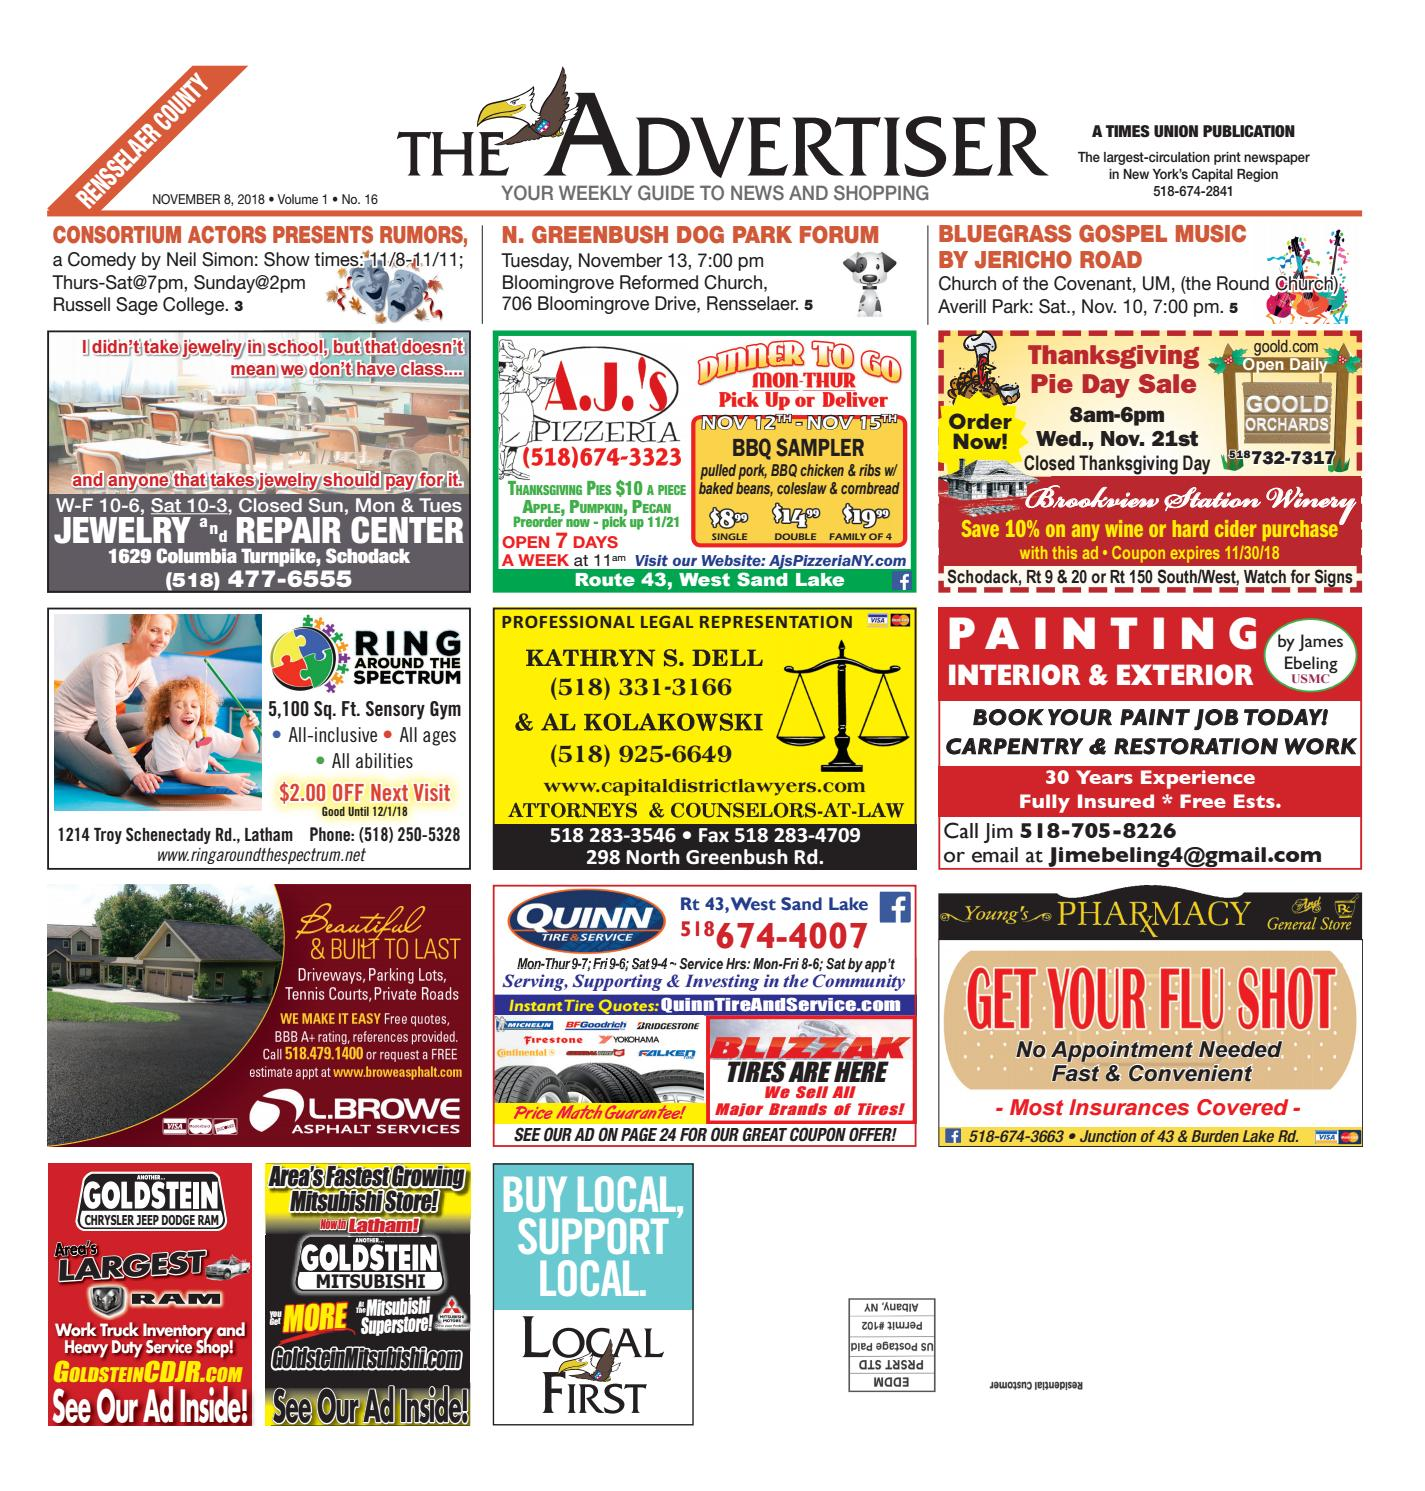 0336eb91018 Local First The Advertiser 110818 by Capital Region Weekly Newspapers -  issuu